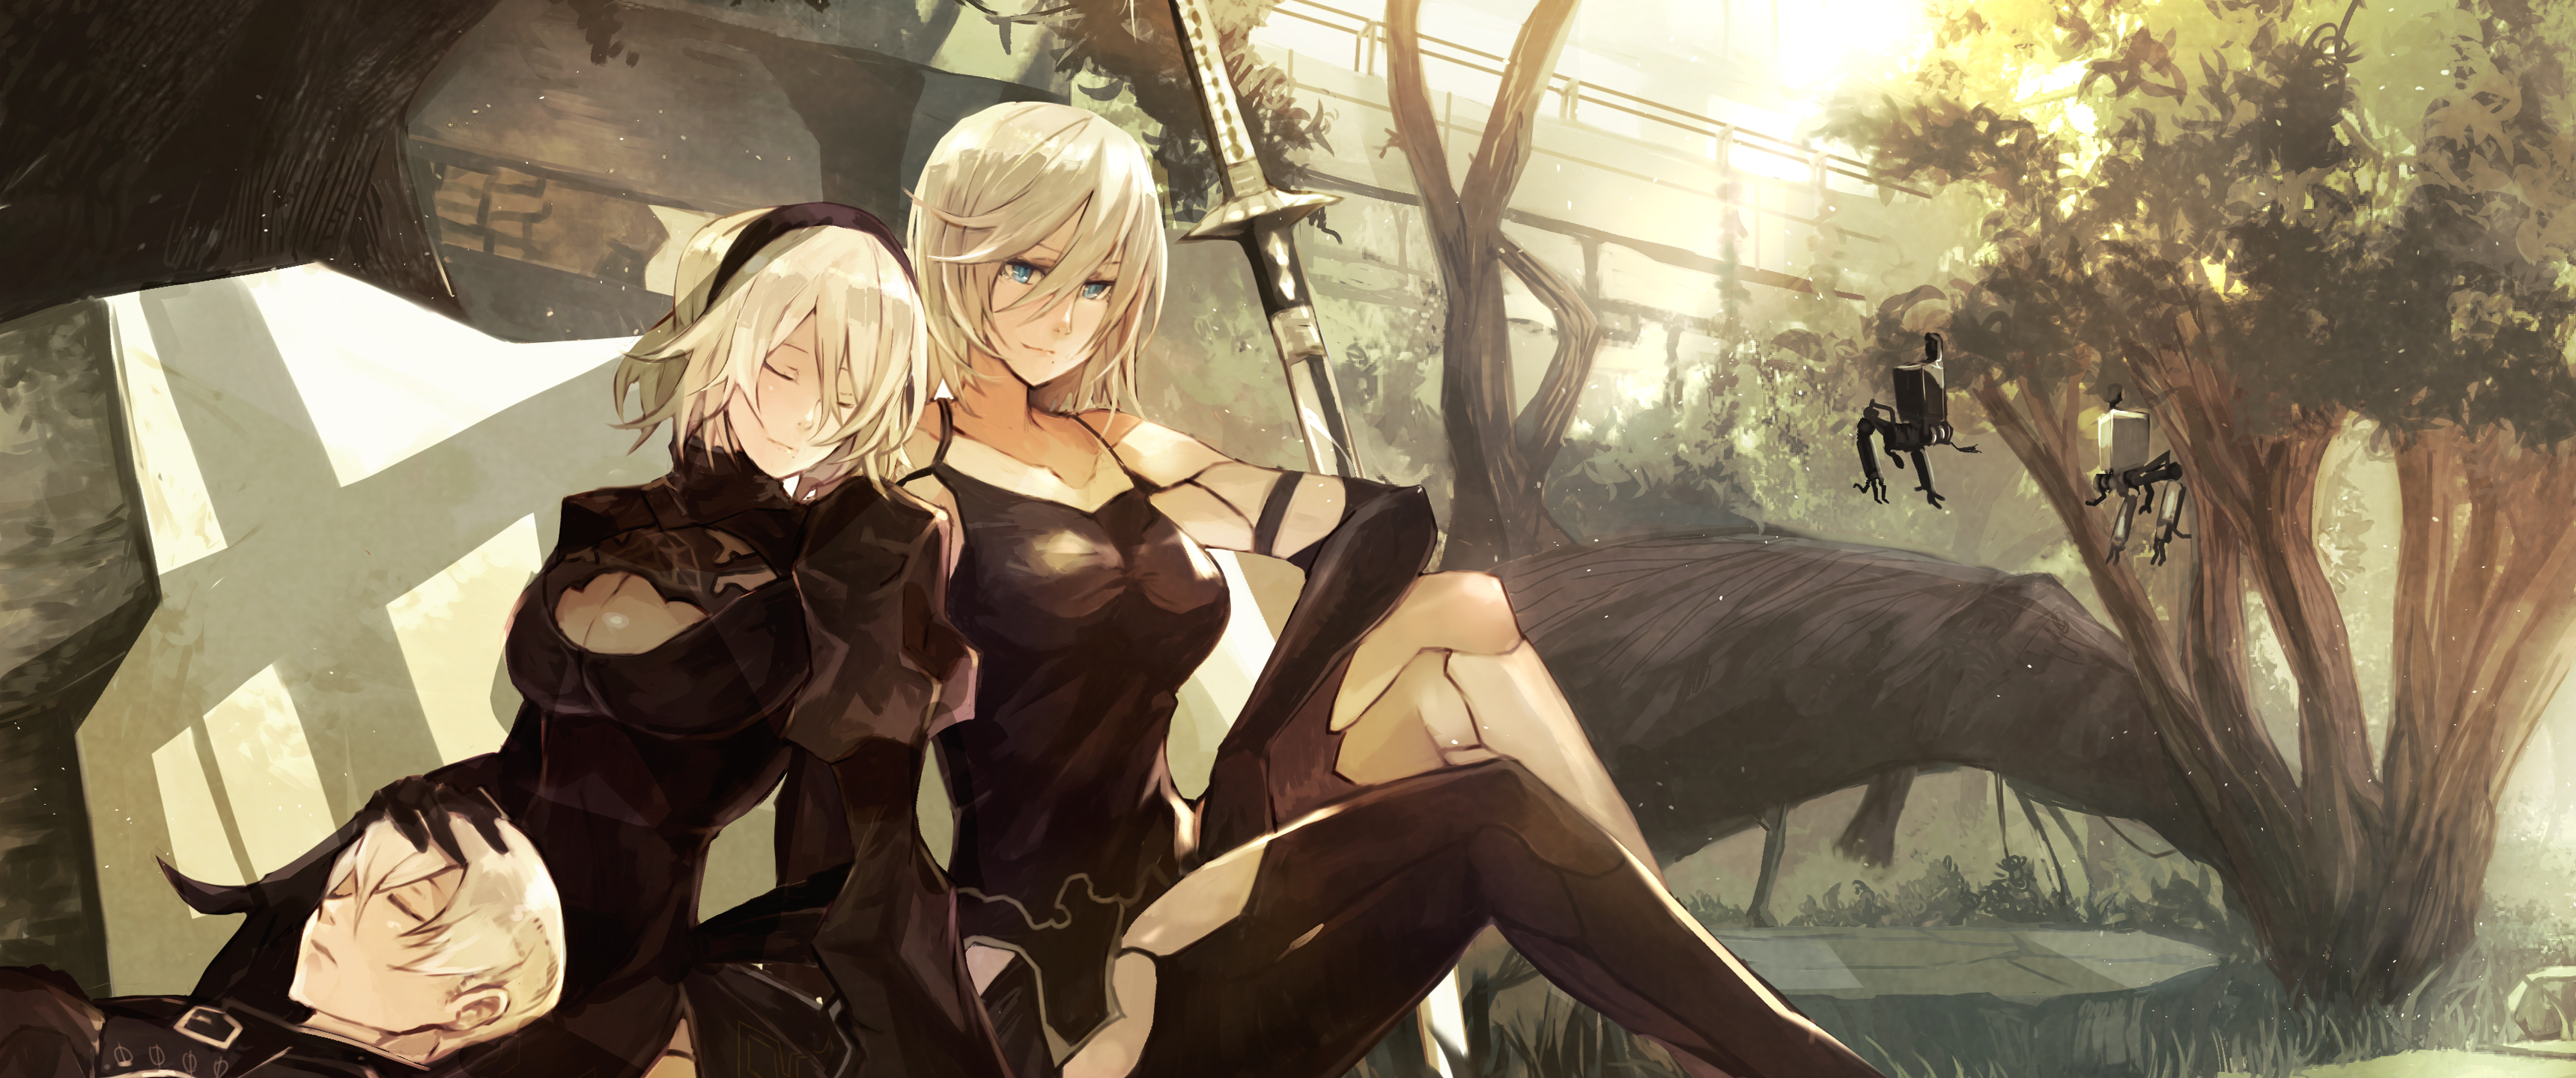 Girl With Weapon Nier Automata Nier 3440x1440 Wallpaper Wallhaven Cc